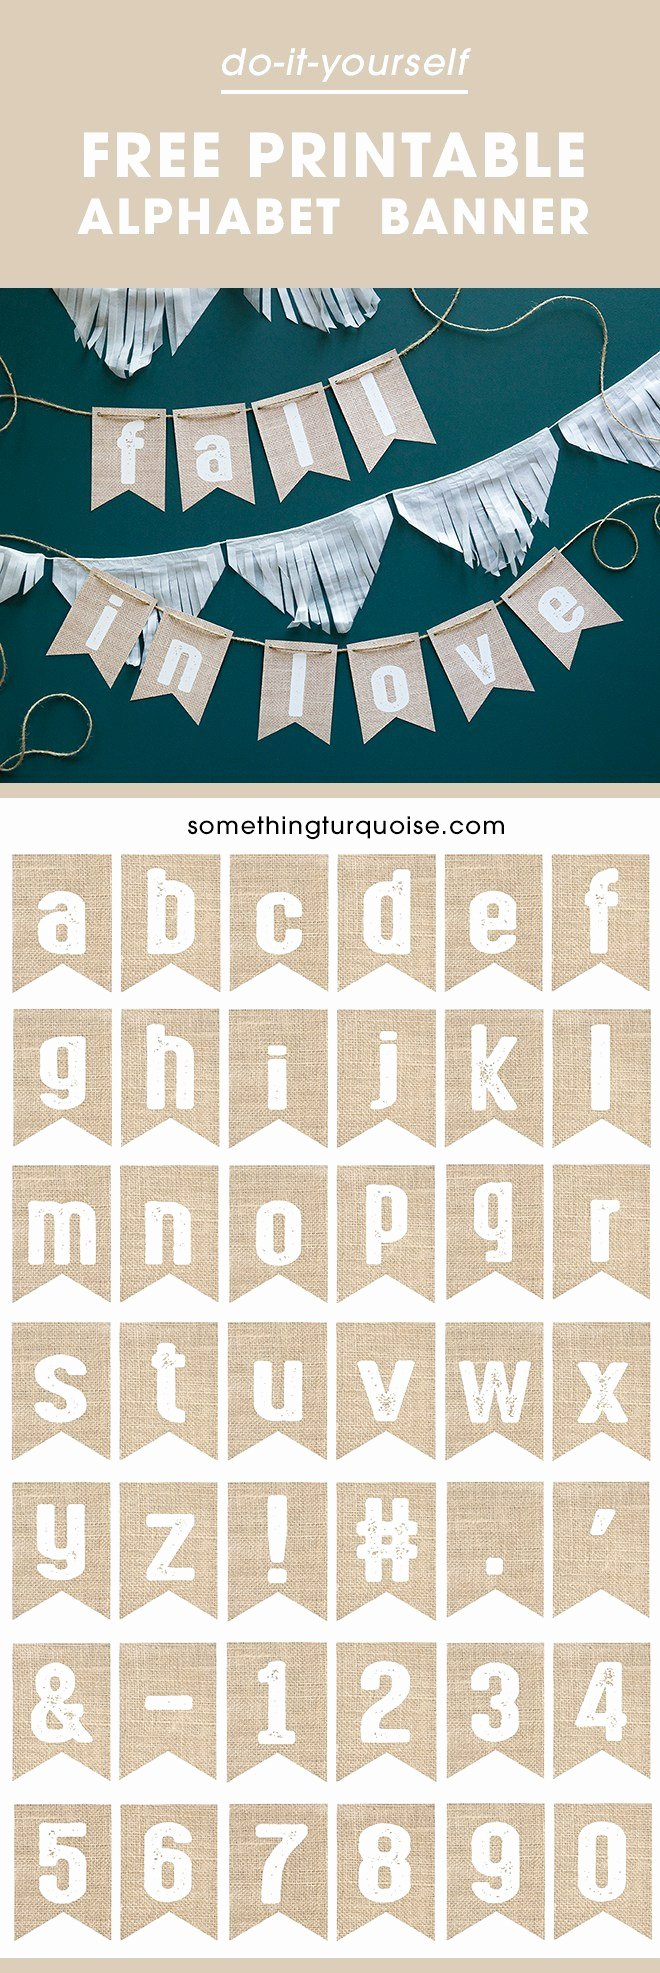 Banner Letters and Numbers Templates Awesome Check Out This Darling Free Printable Burlap Alphabet Banner